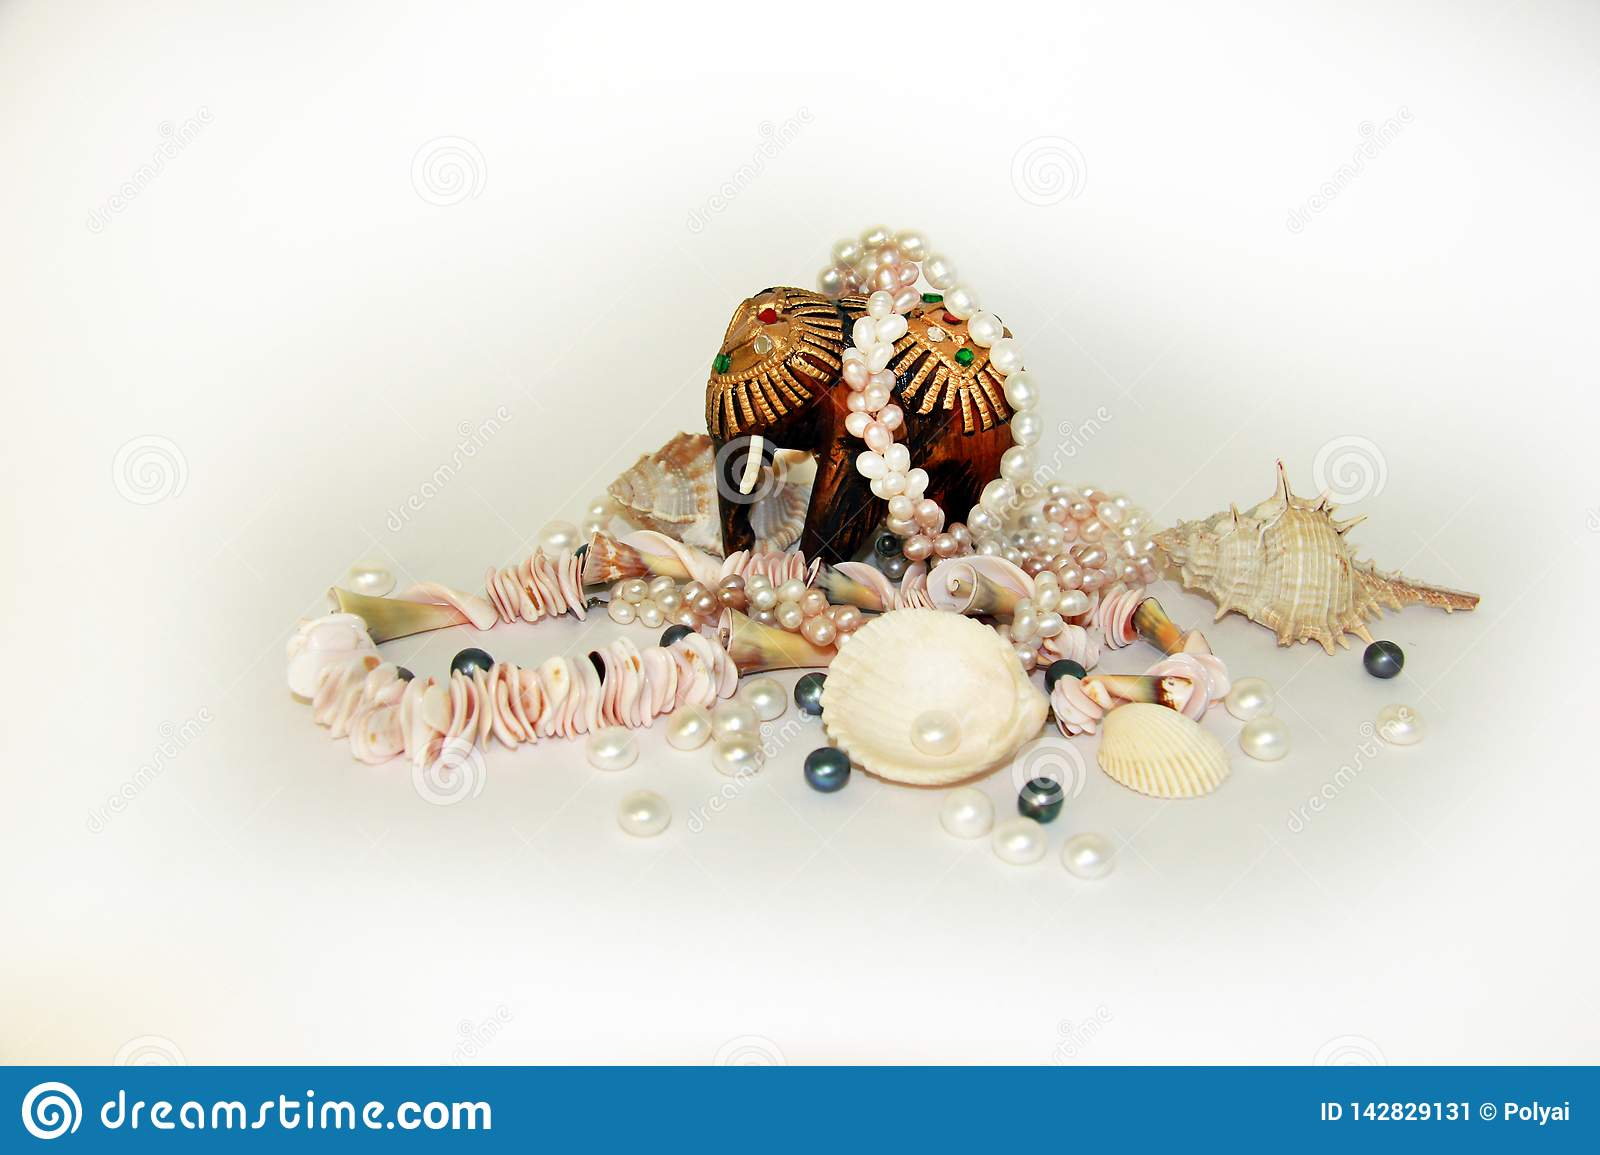 Sea cockleshells and pearls on a black background